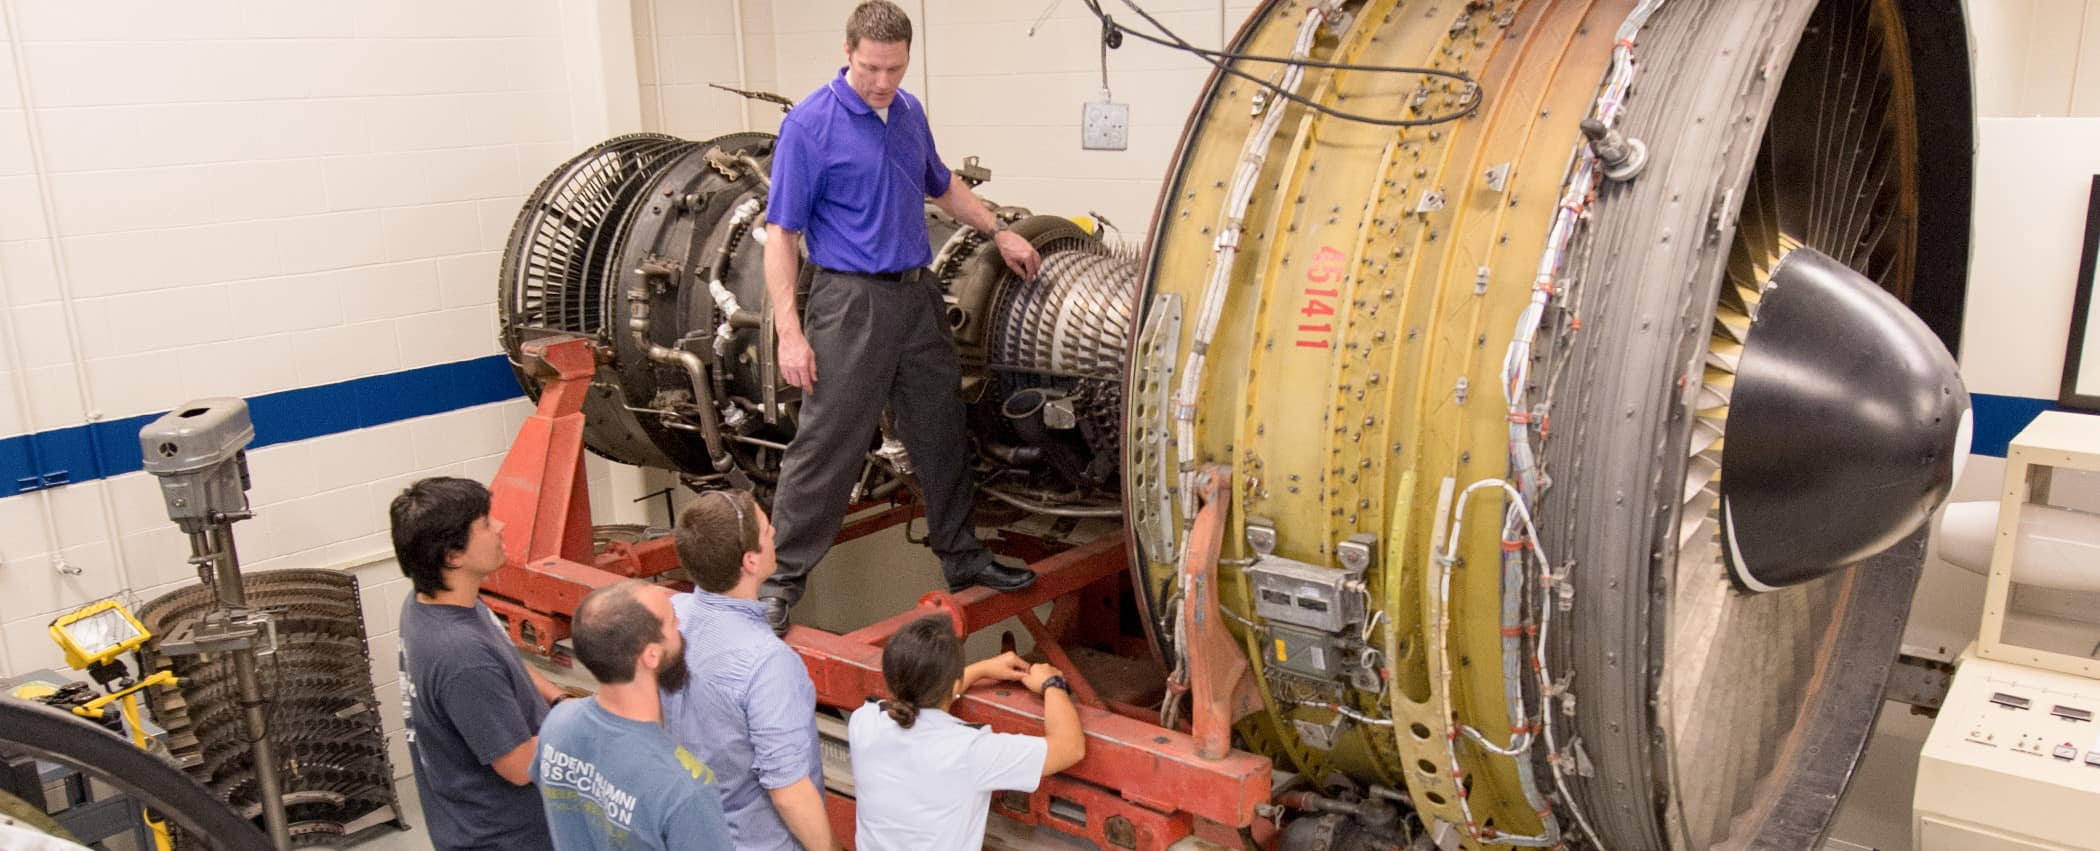 The Aerospace Engineering undergraduate program at Embry-Riddle has held the top ranking in the nation among schools whose highest degree is a bachelor's, according to U.S. News & World Report's America's Best Colleges Guide.